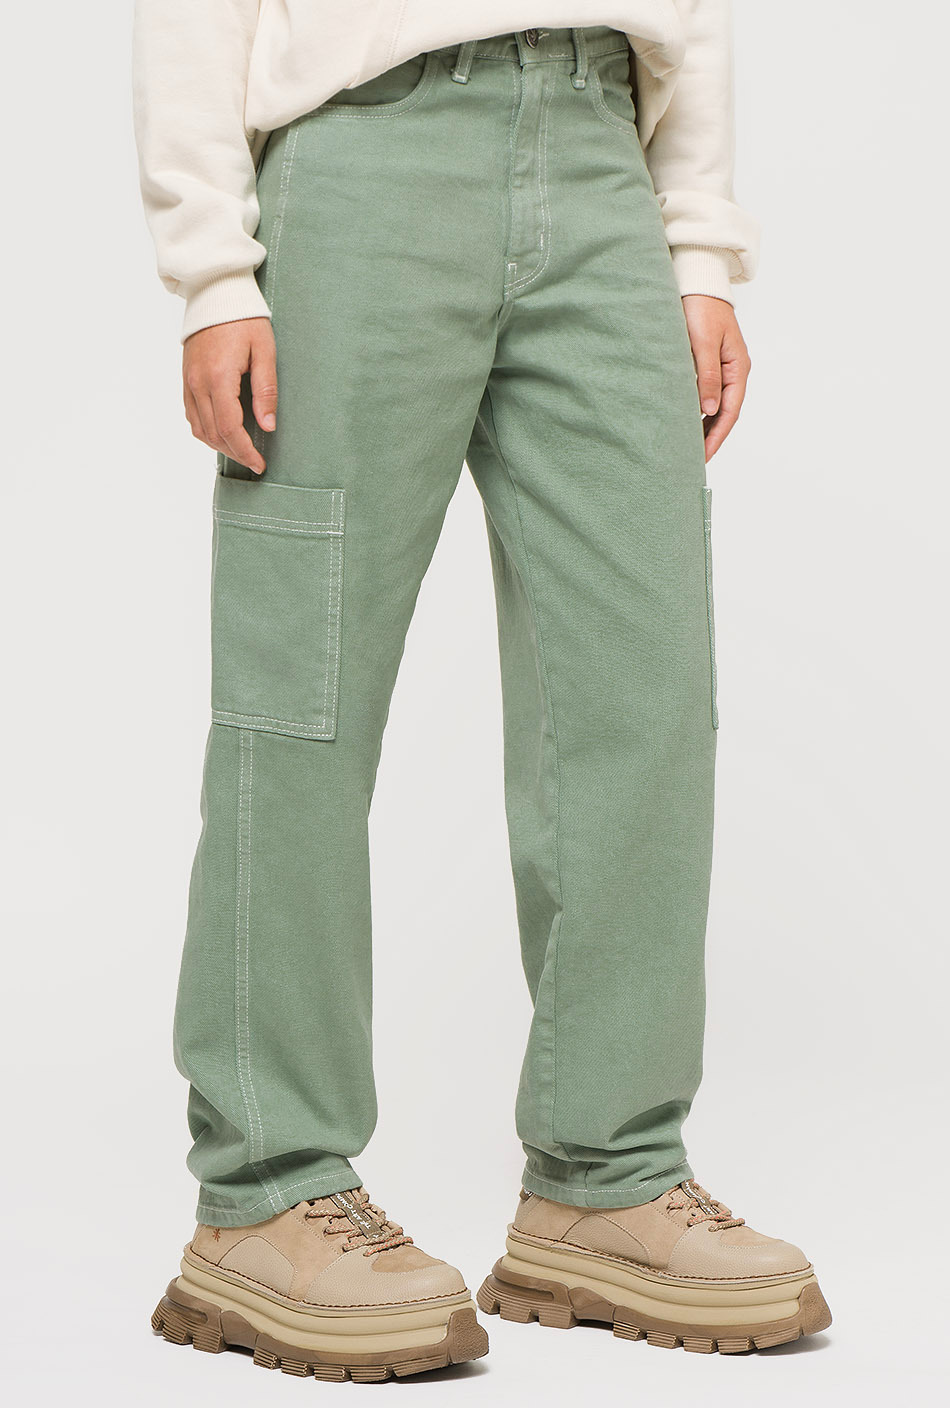 Factory Mint trousers